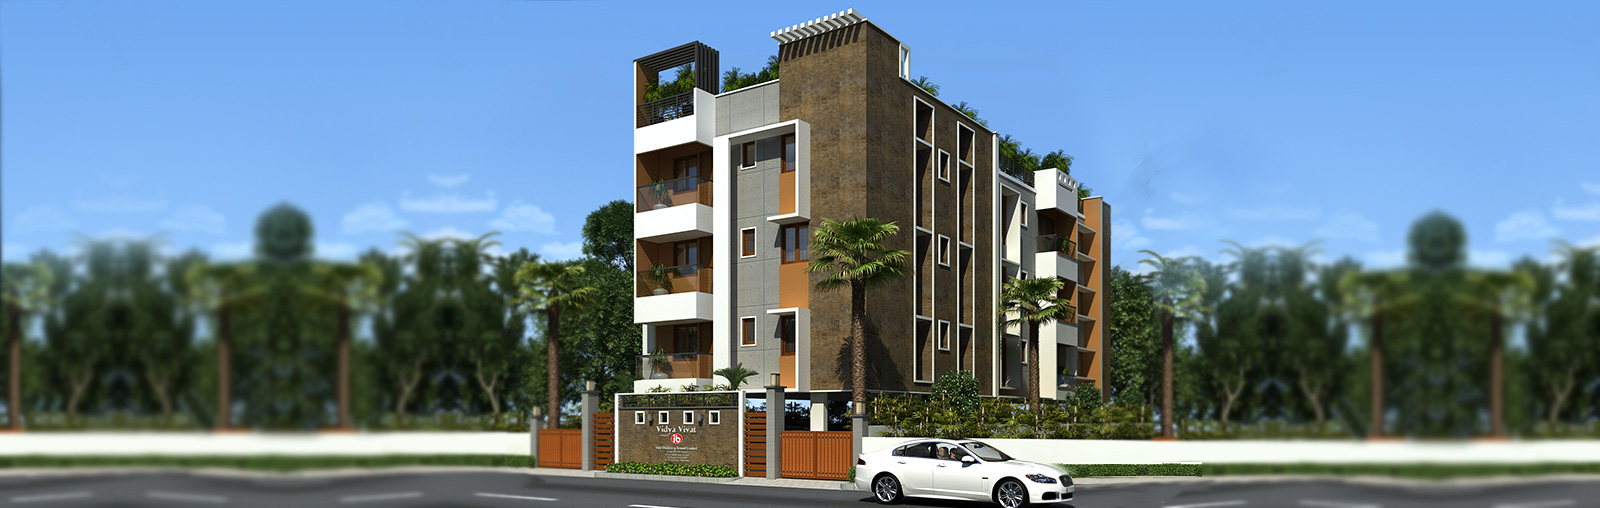 Apartments for sale in Kellys